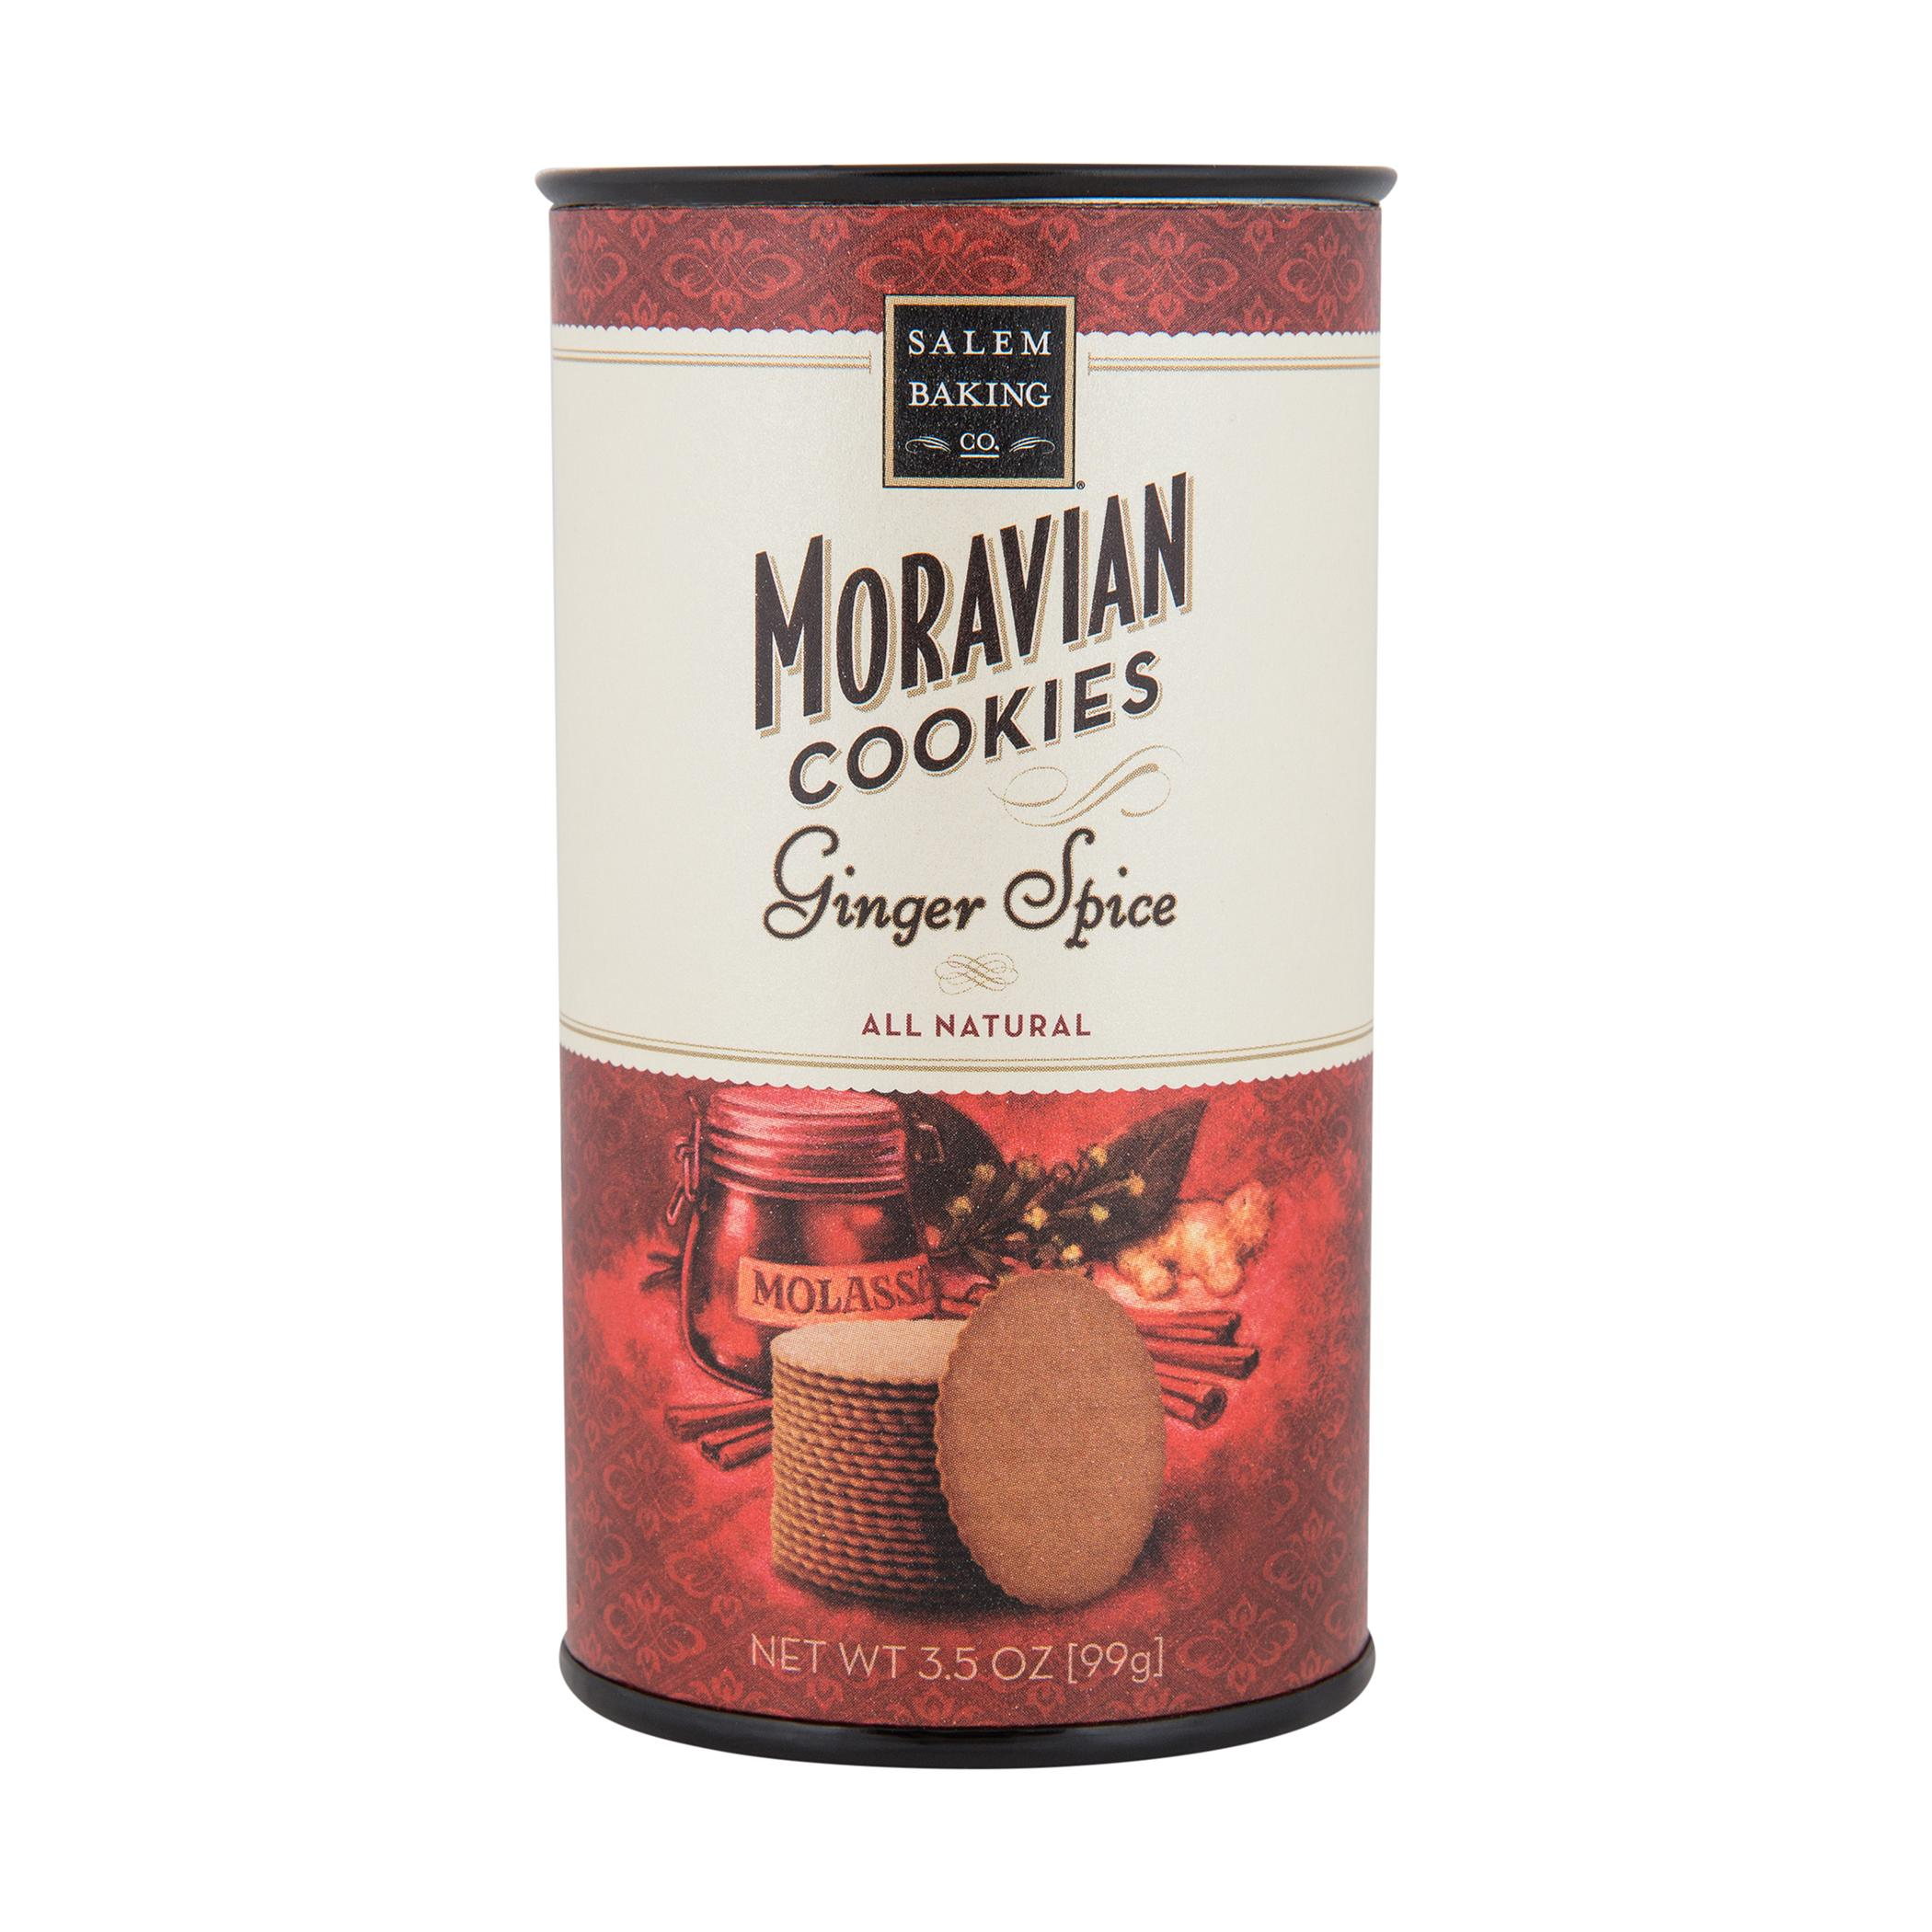 Moravian cookie makers hopeful that state symbol will attract more customers - Scott Livengood